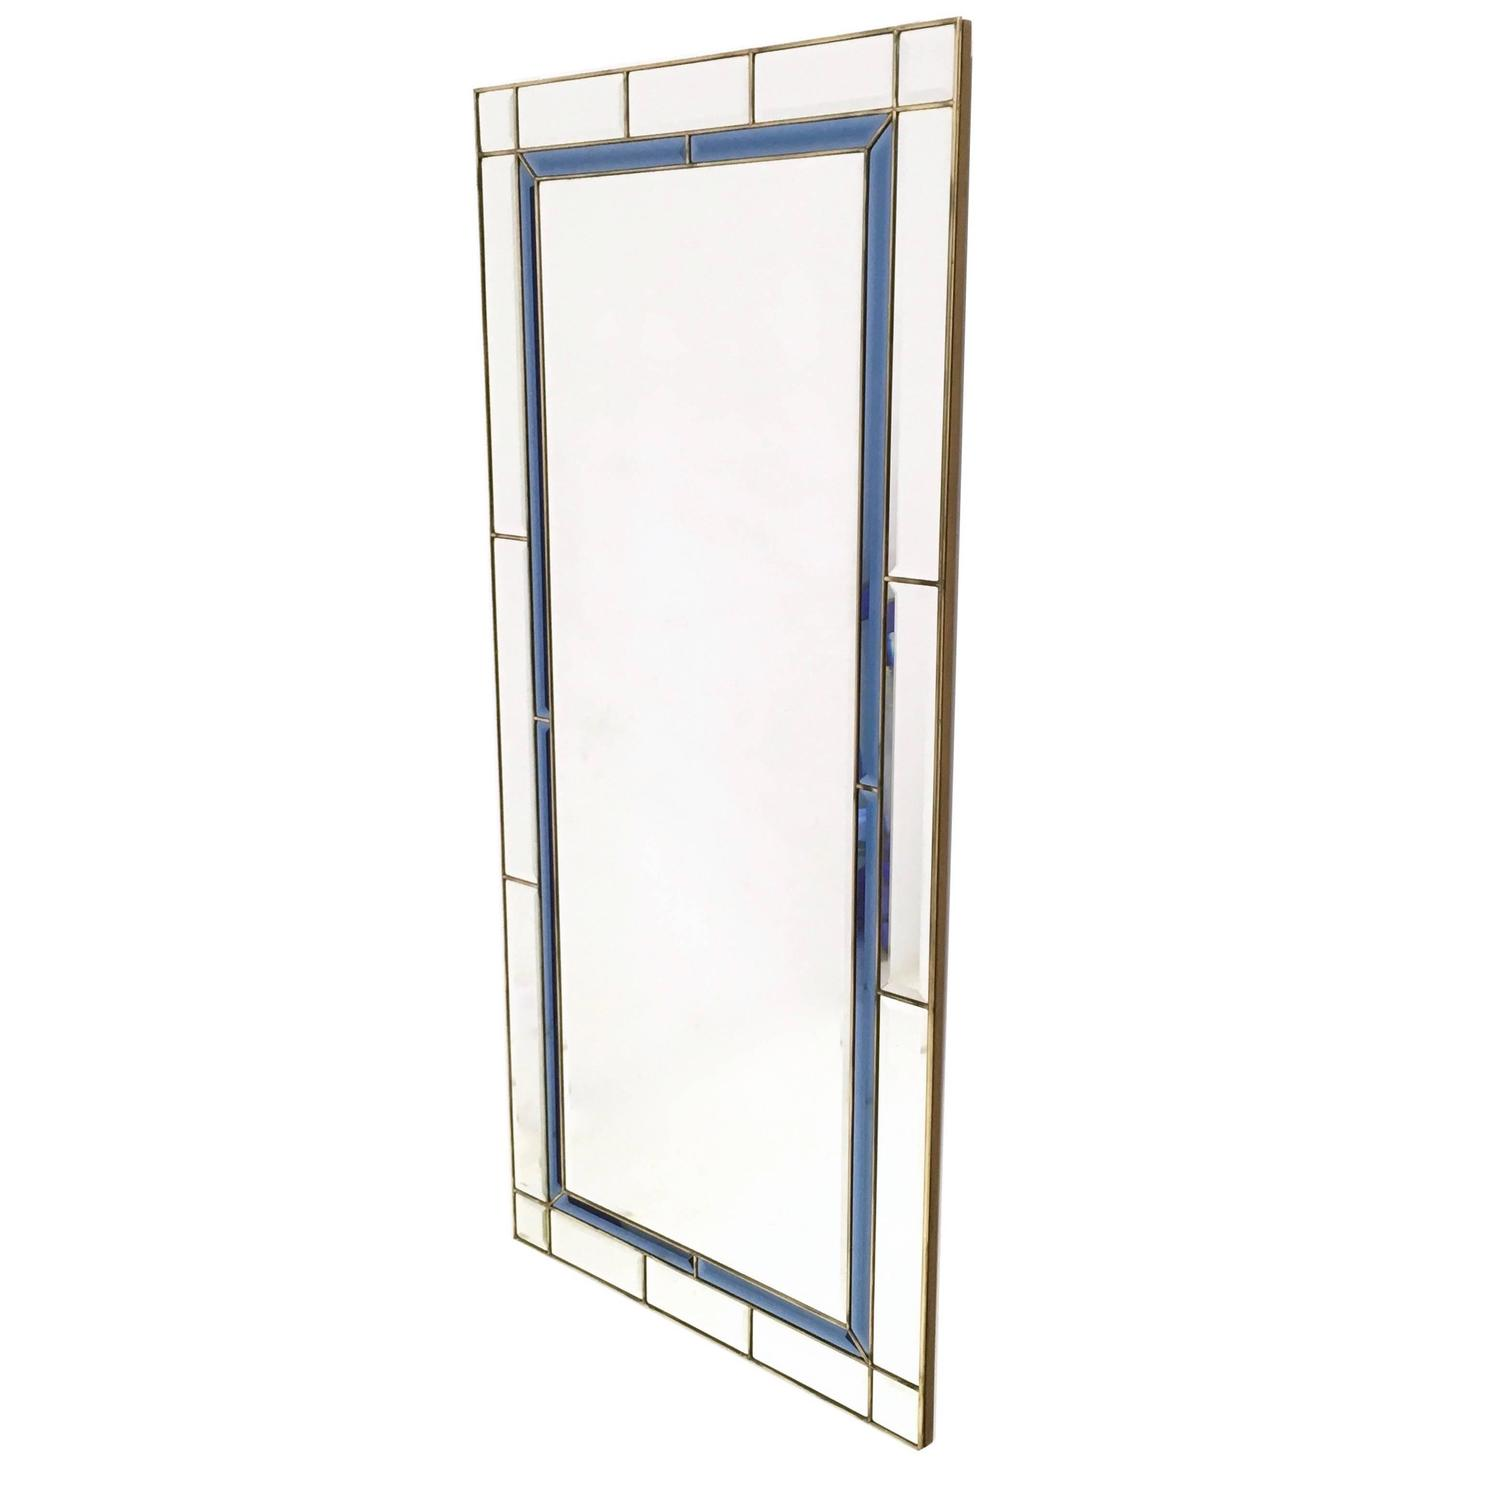 Large wall mirror 1960s for sale at 1stdibs for Large wall mirrors for sale